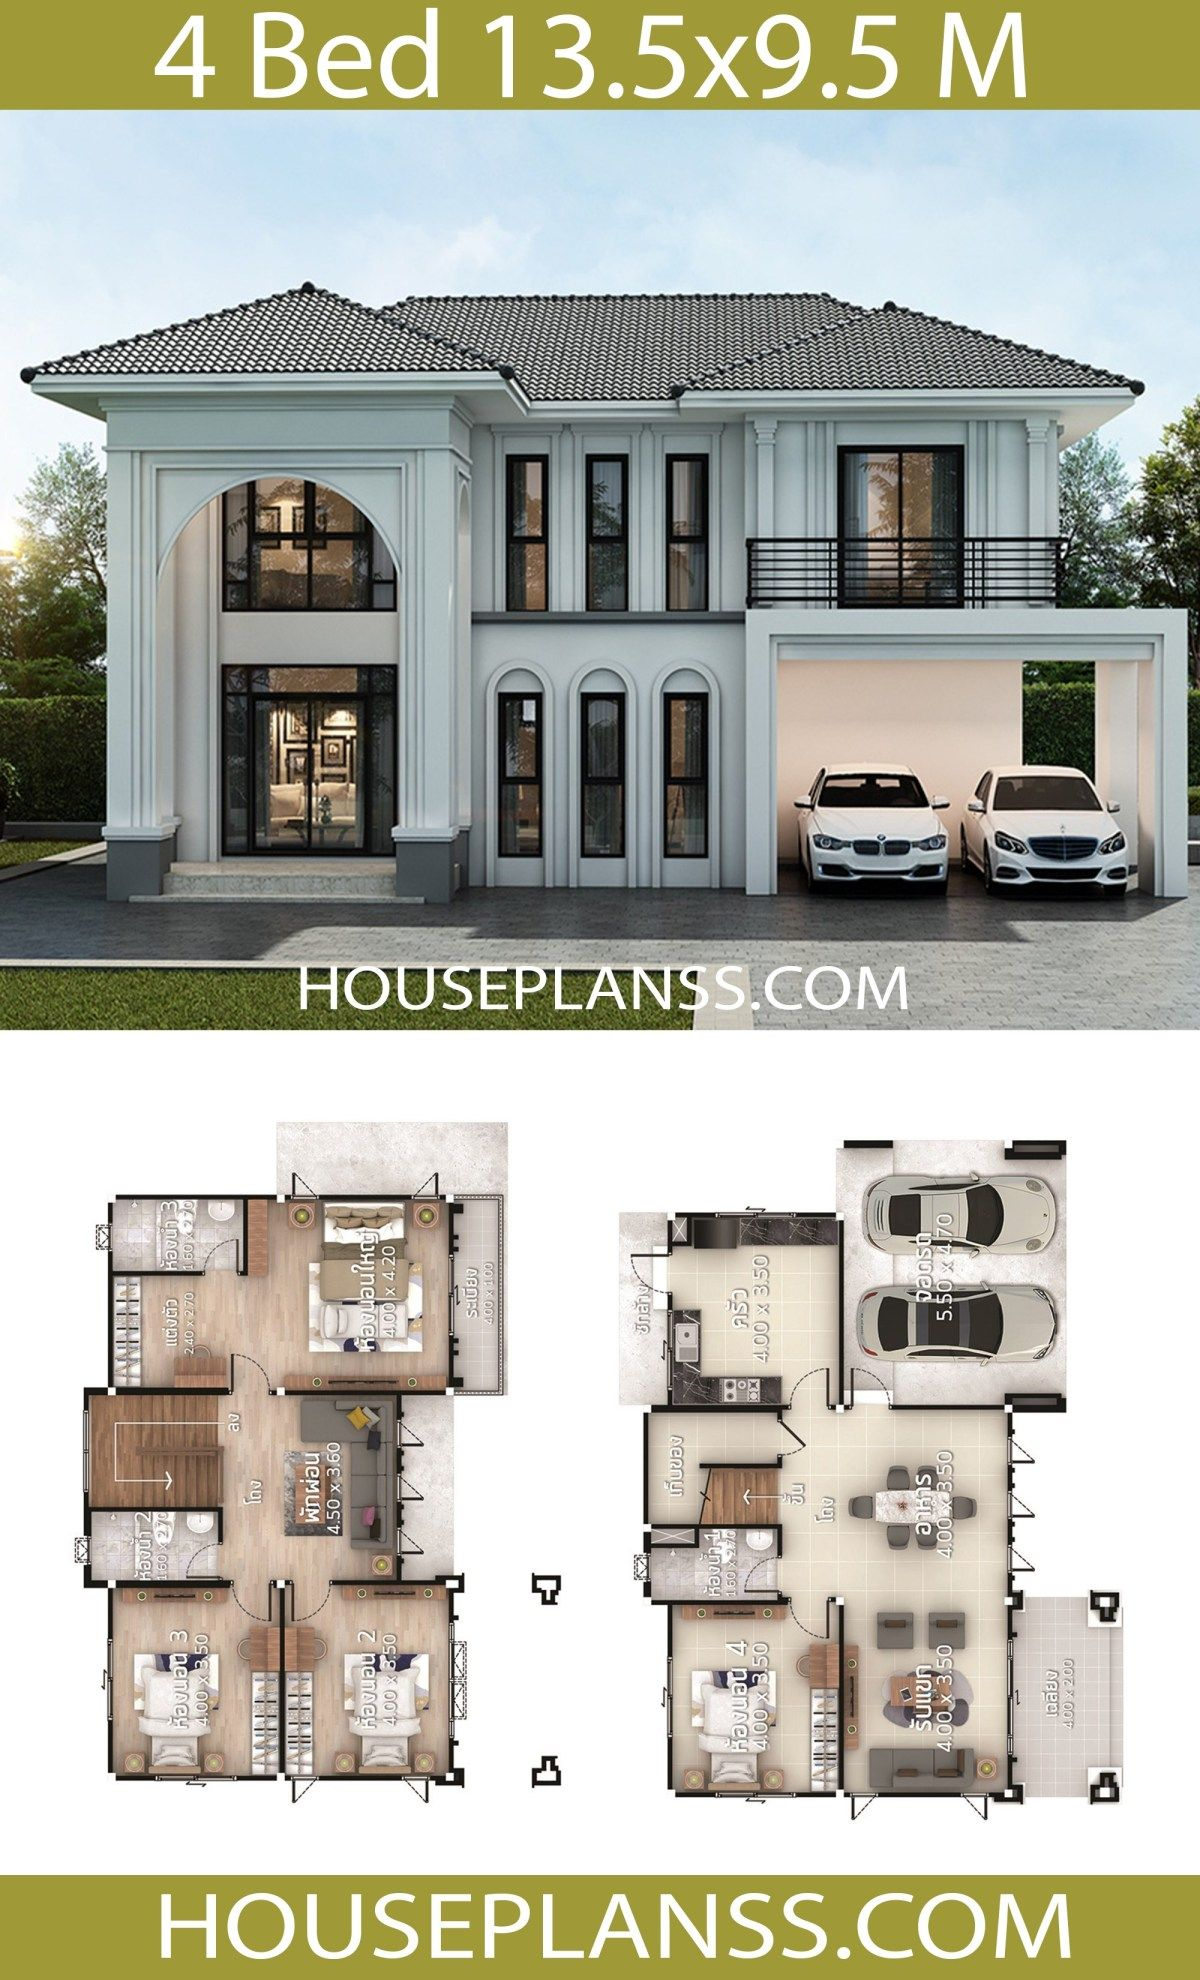 House Plans Design Idea 13 5x9 5 With 4 Bedrooms House Plans 3d Beautiful House Plans Sims House Plans Model House Plan